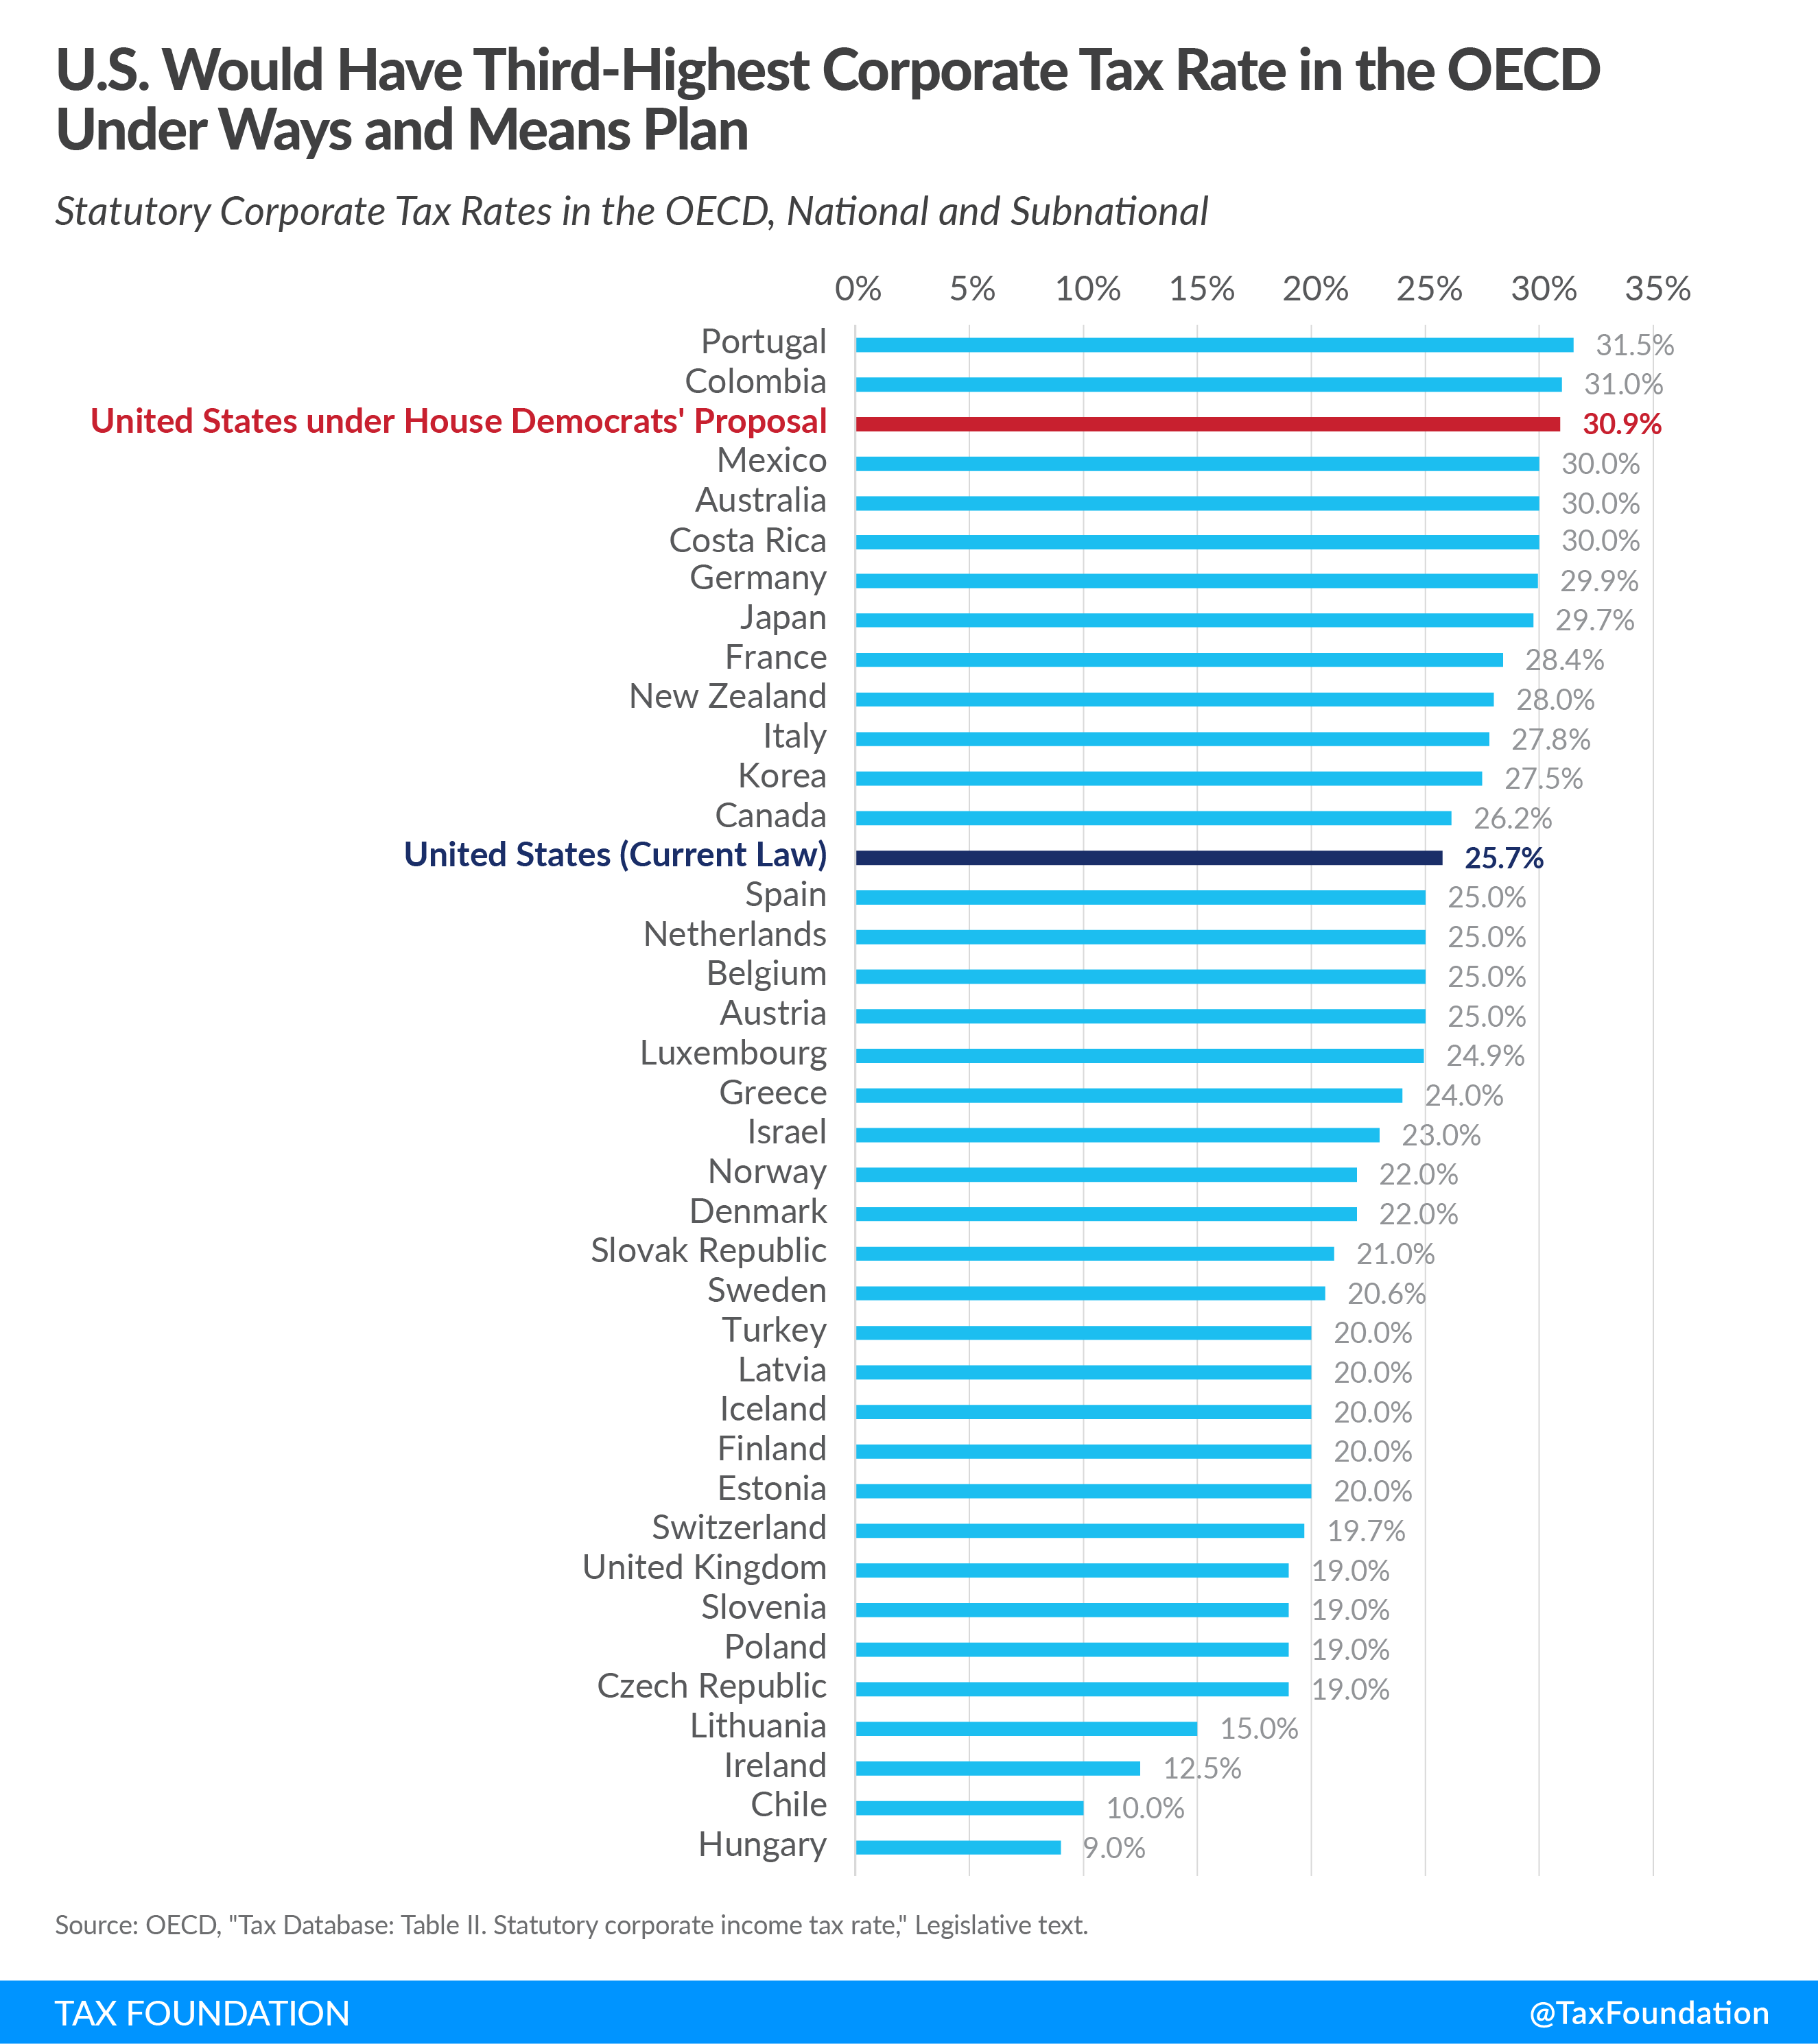 House Democrats us corporate tax ranking competitiveness U.S. Would Have Third-Highest Corporate Tax Rate in OECD Under Ways and Means Plan